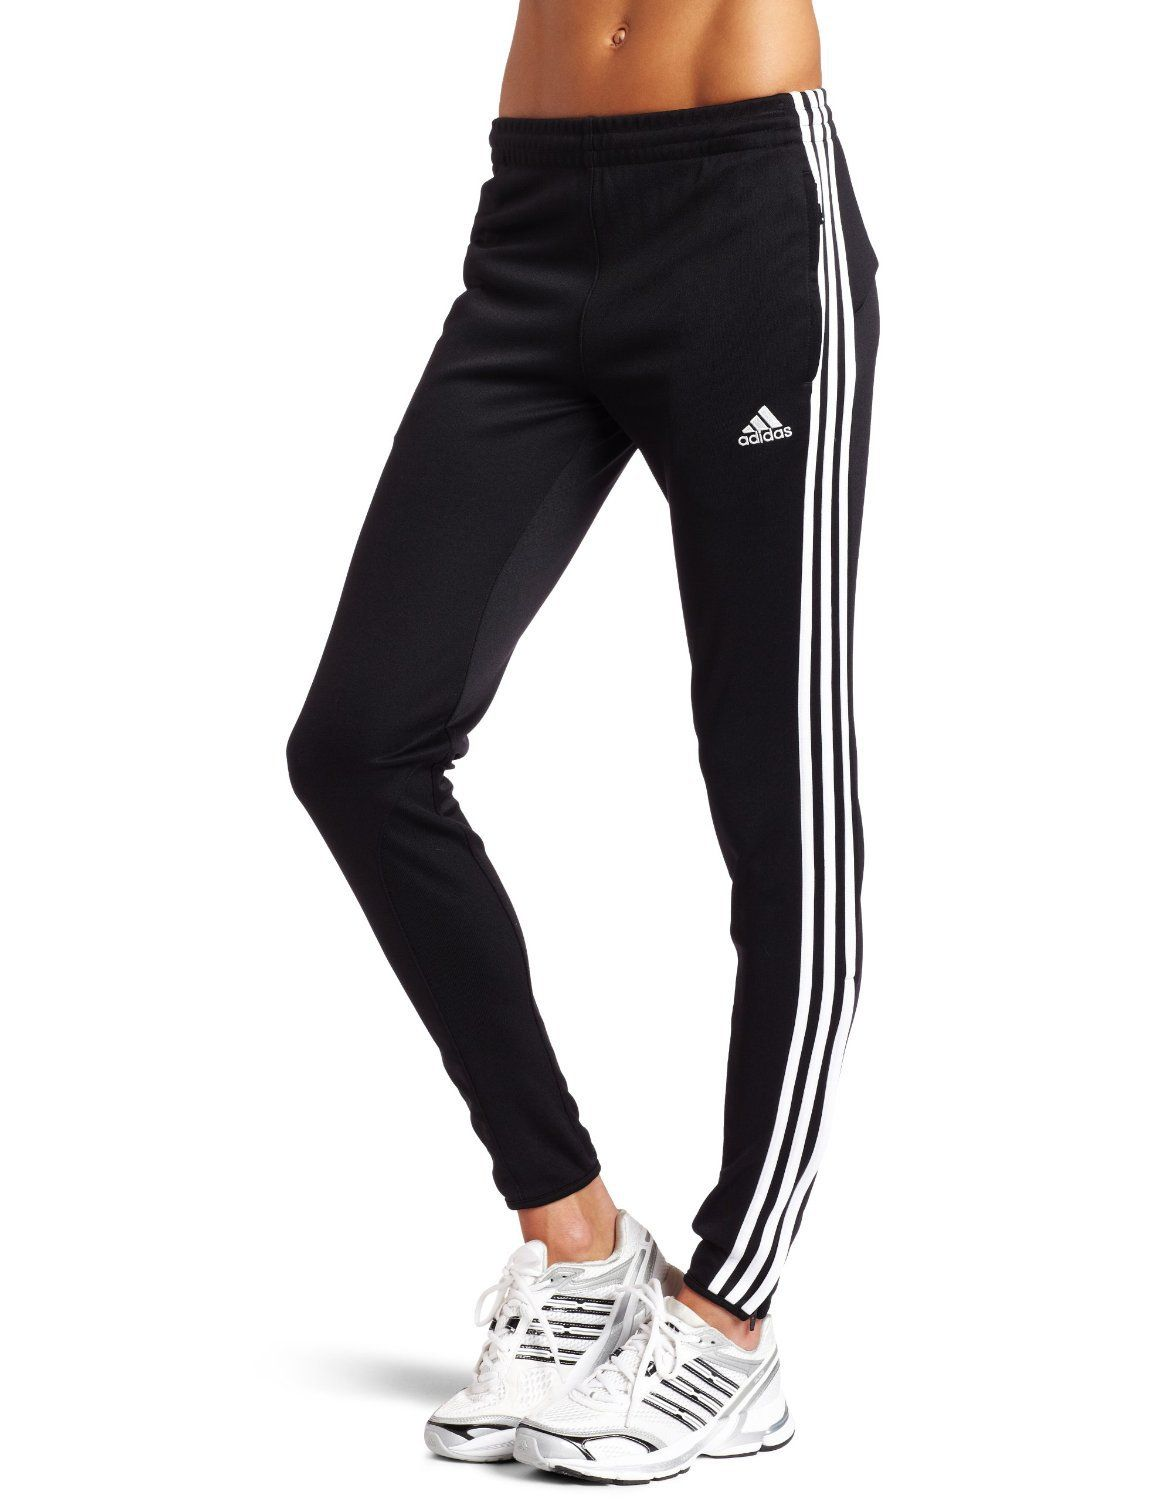 I Want These Adidas Training Pants Regardless Whether I Play Soccer Or Not Adidas Damen Fitness Kleidung Jogginghose Damen